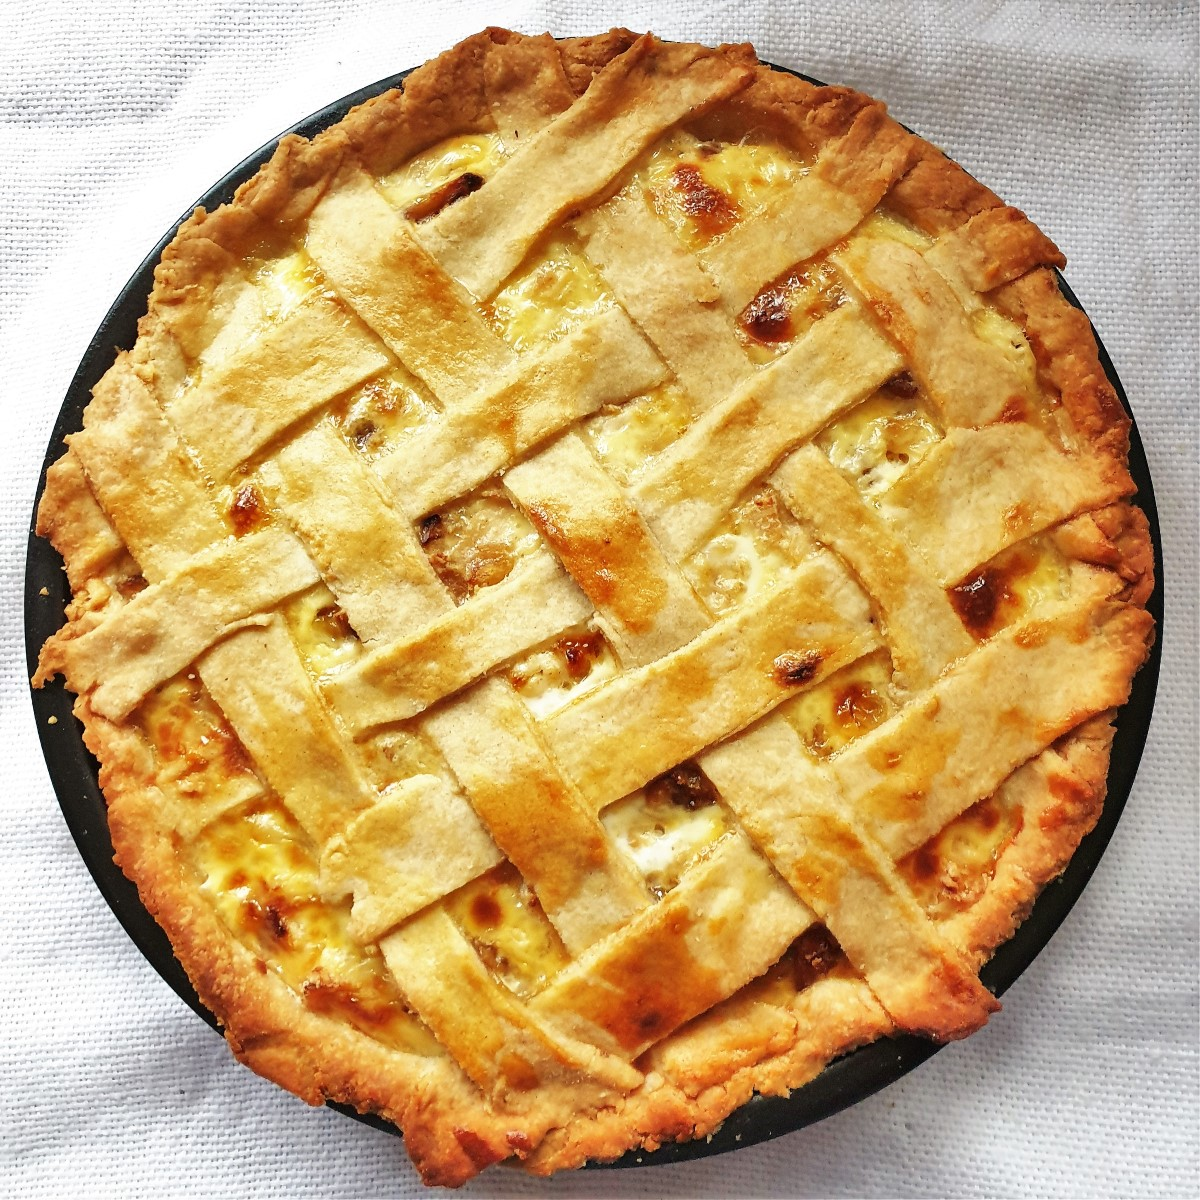 A baked chicken and mushroom quiche.